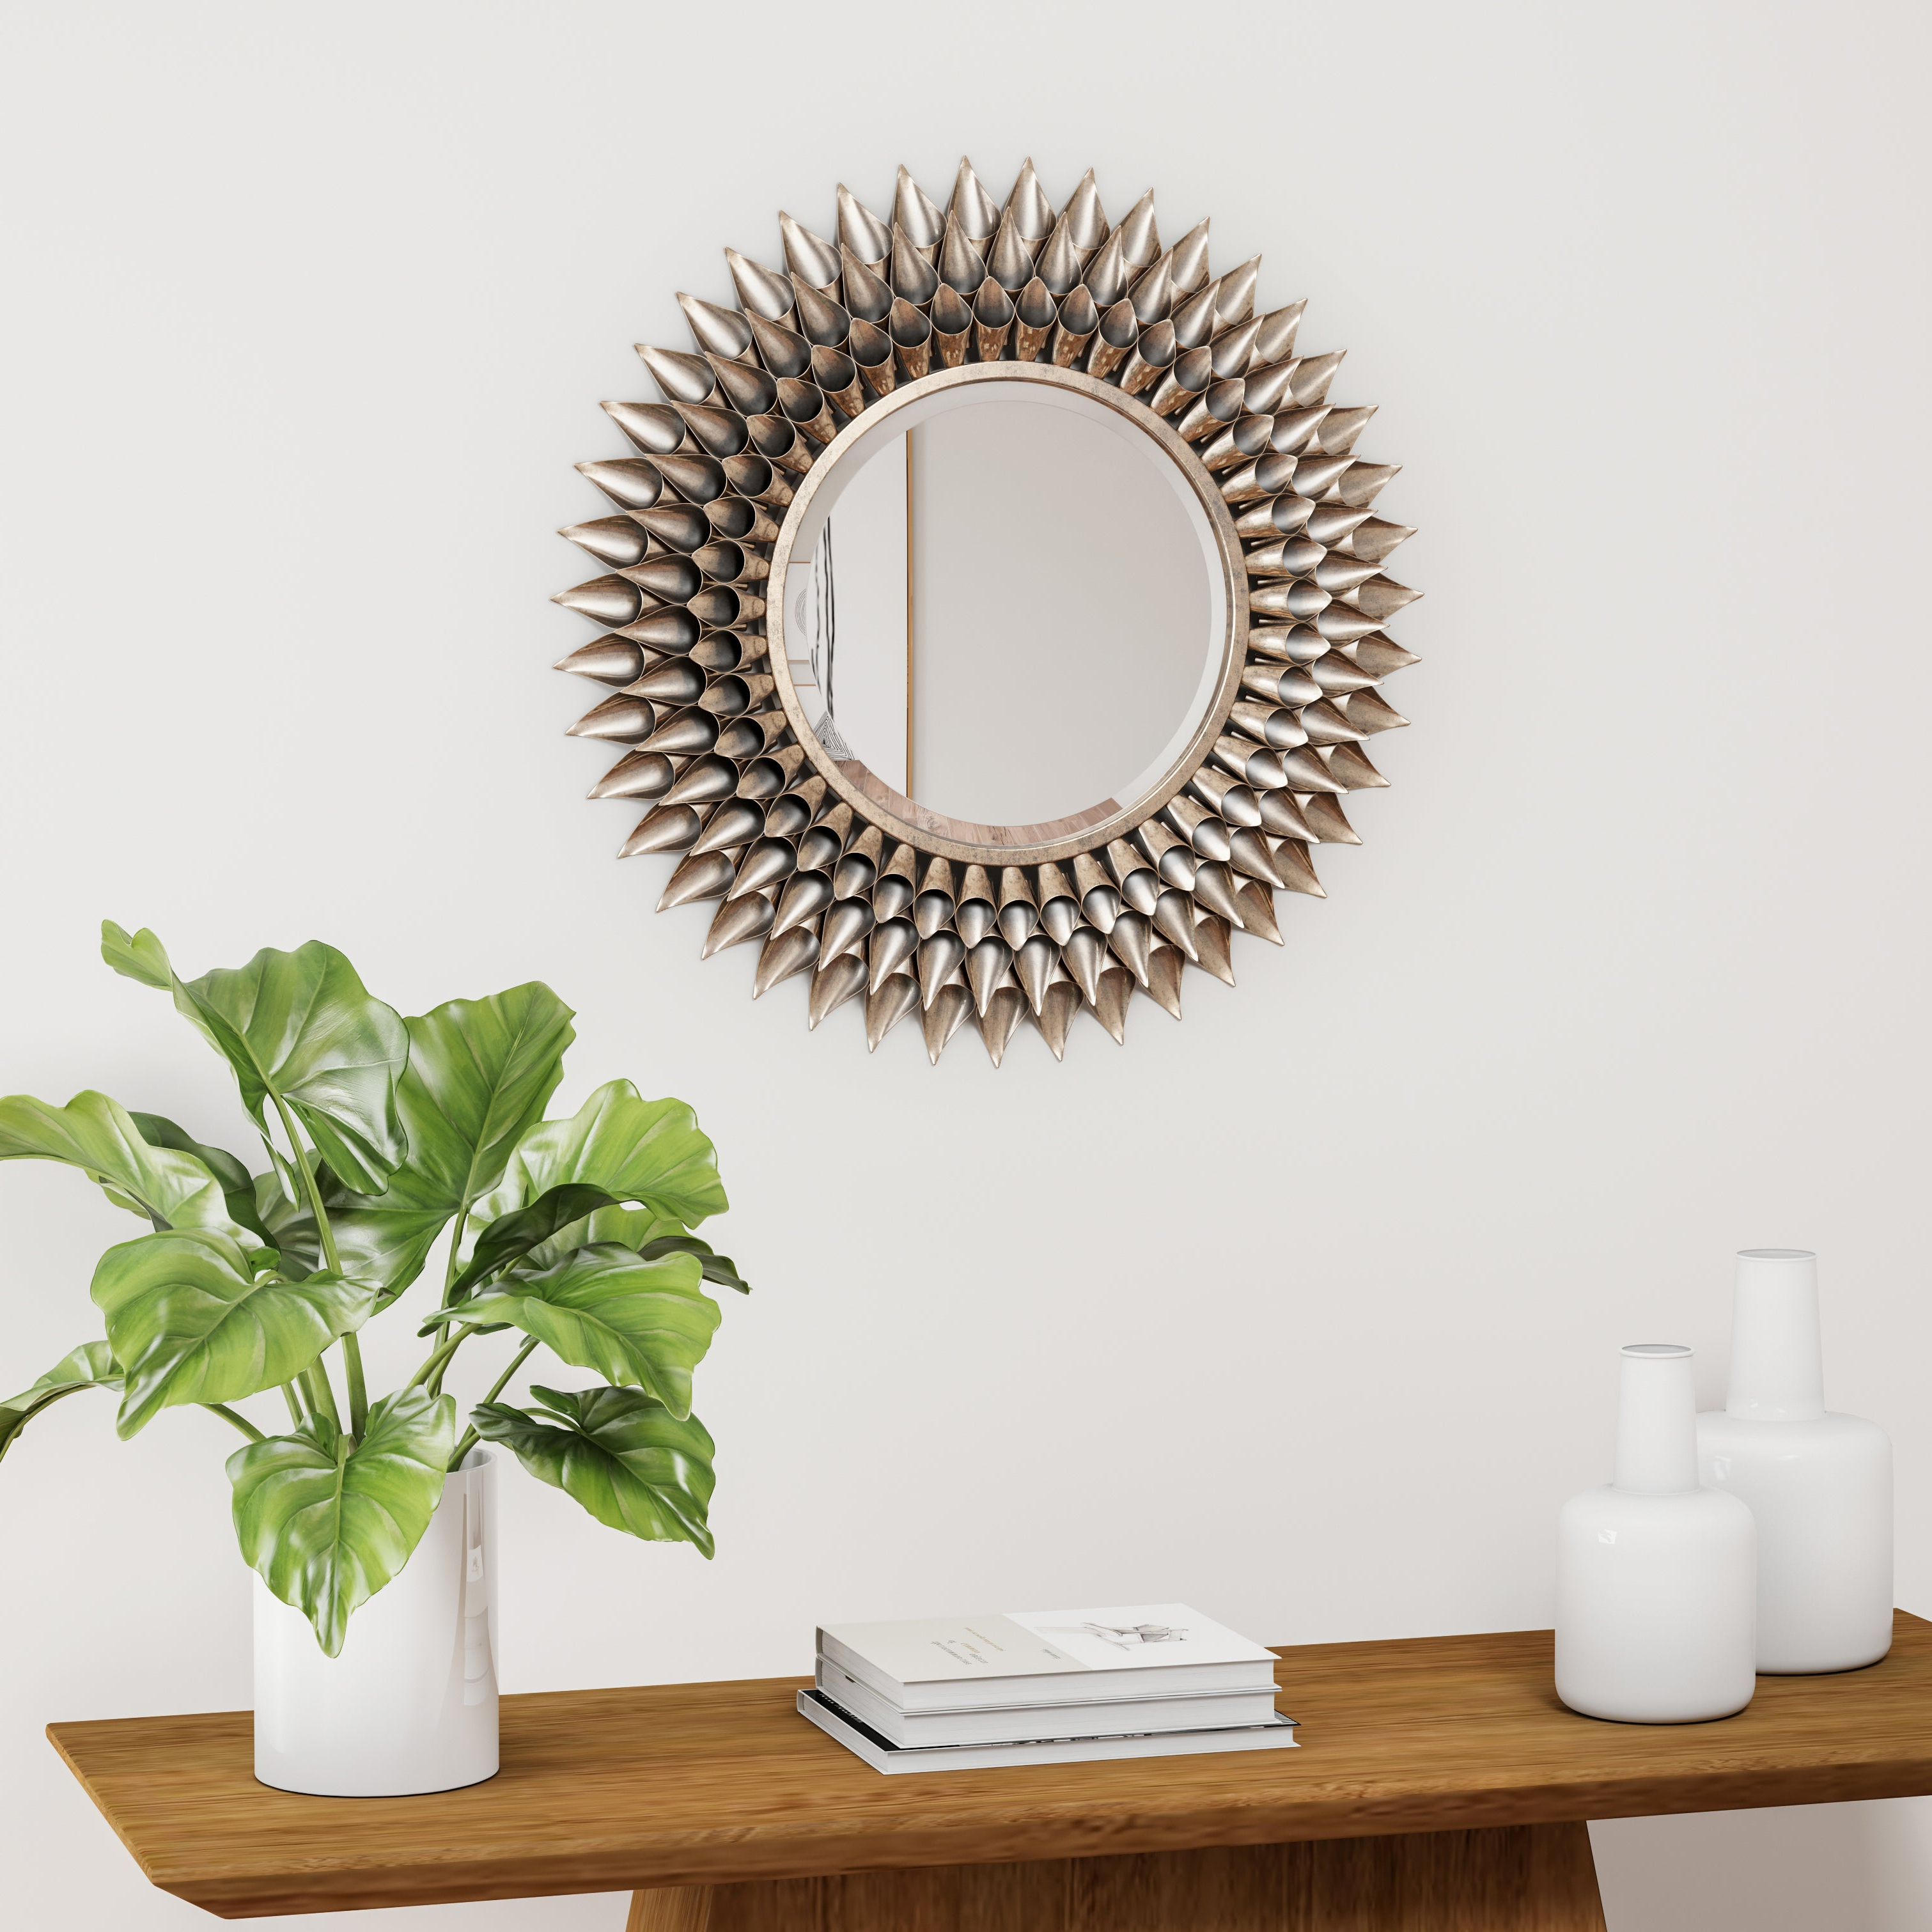 Silver Orchid Brian Round Decorative Wall Mirror – Weathered Silver With Regard To Recent Round Decorative Wall Mirrors (View 19 of 20)